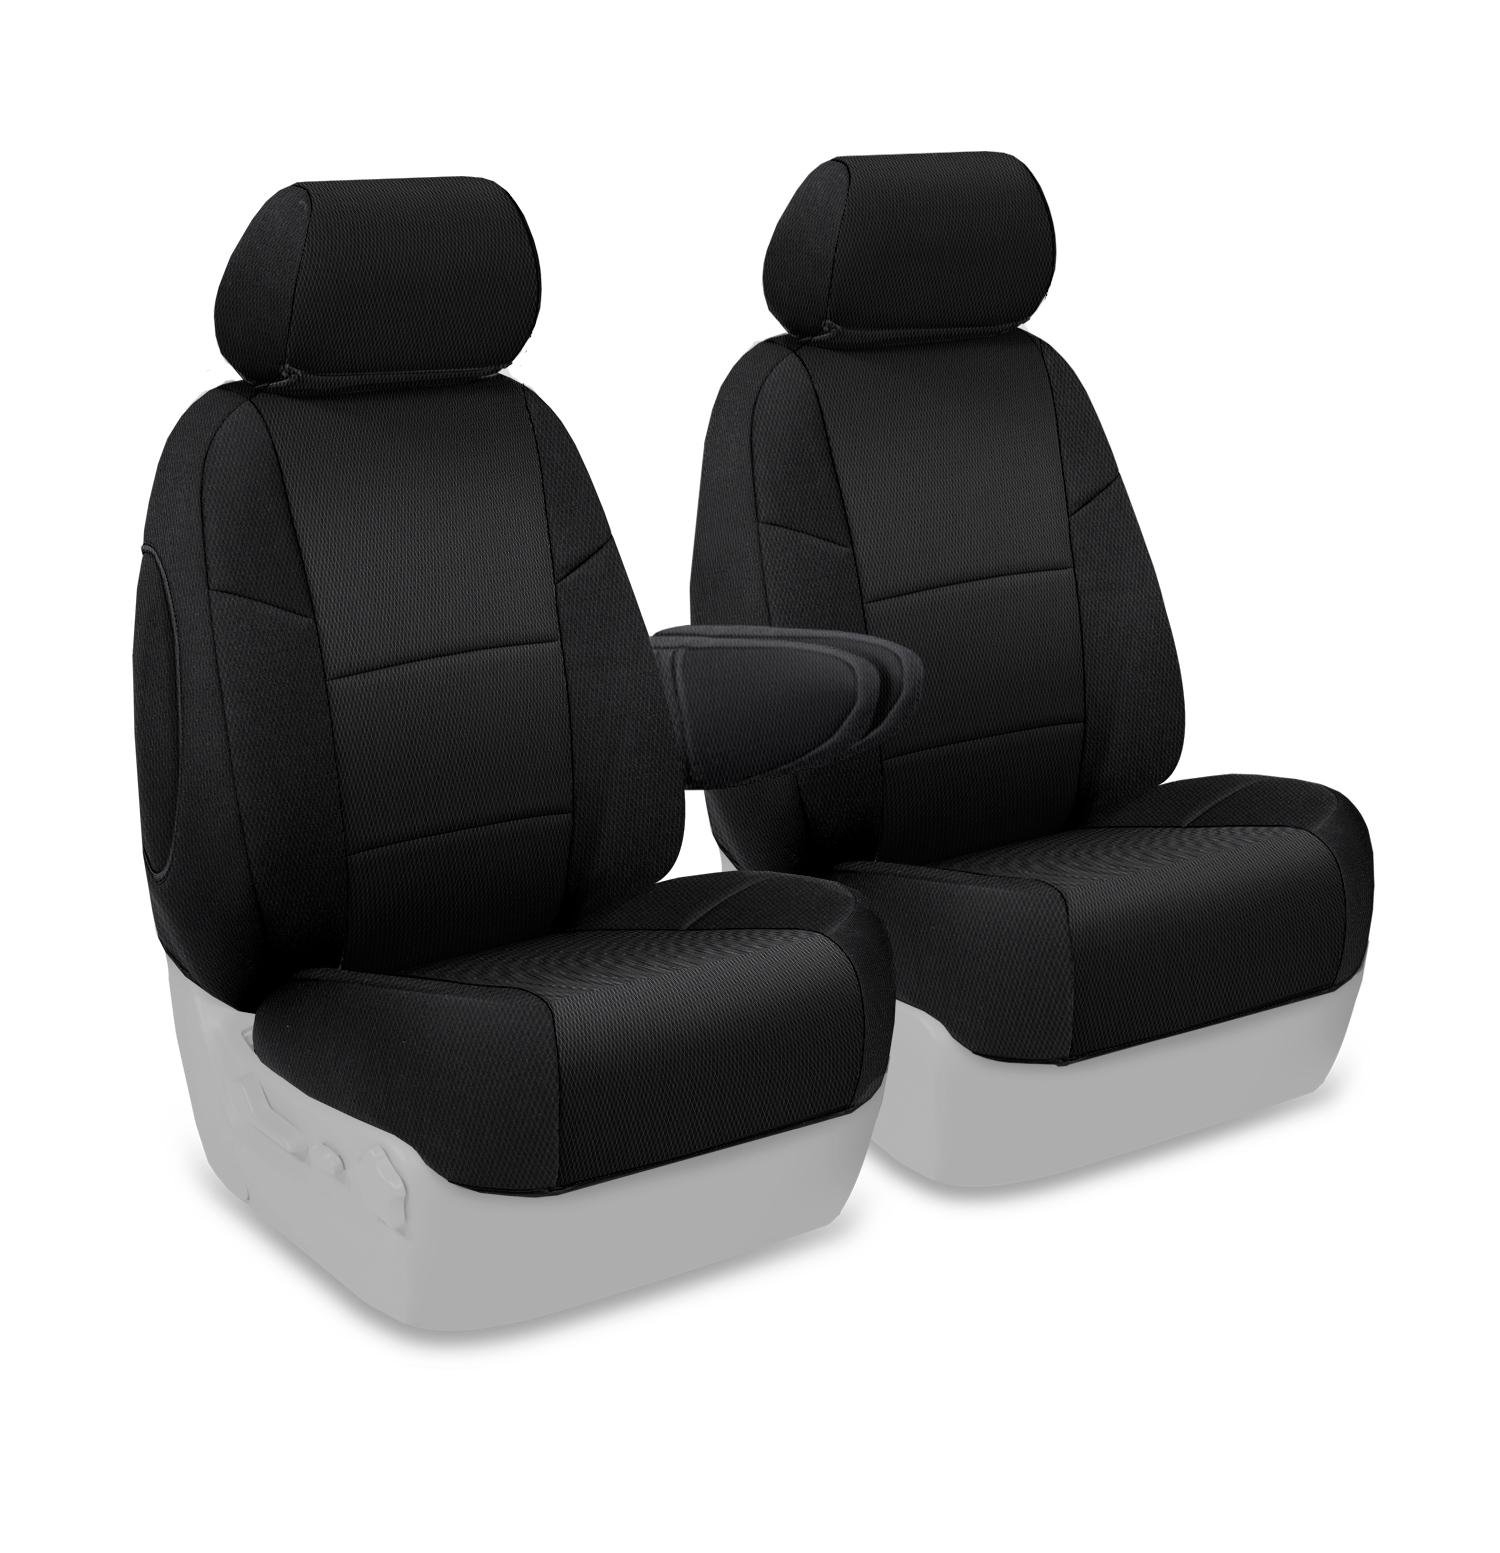 Coverking Custom Fit Front 50/50 Bucket Seat Cover for Select Saturn Vue Models - Spacermesh Solid (Black)